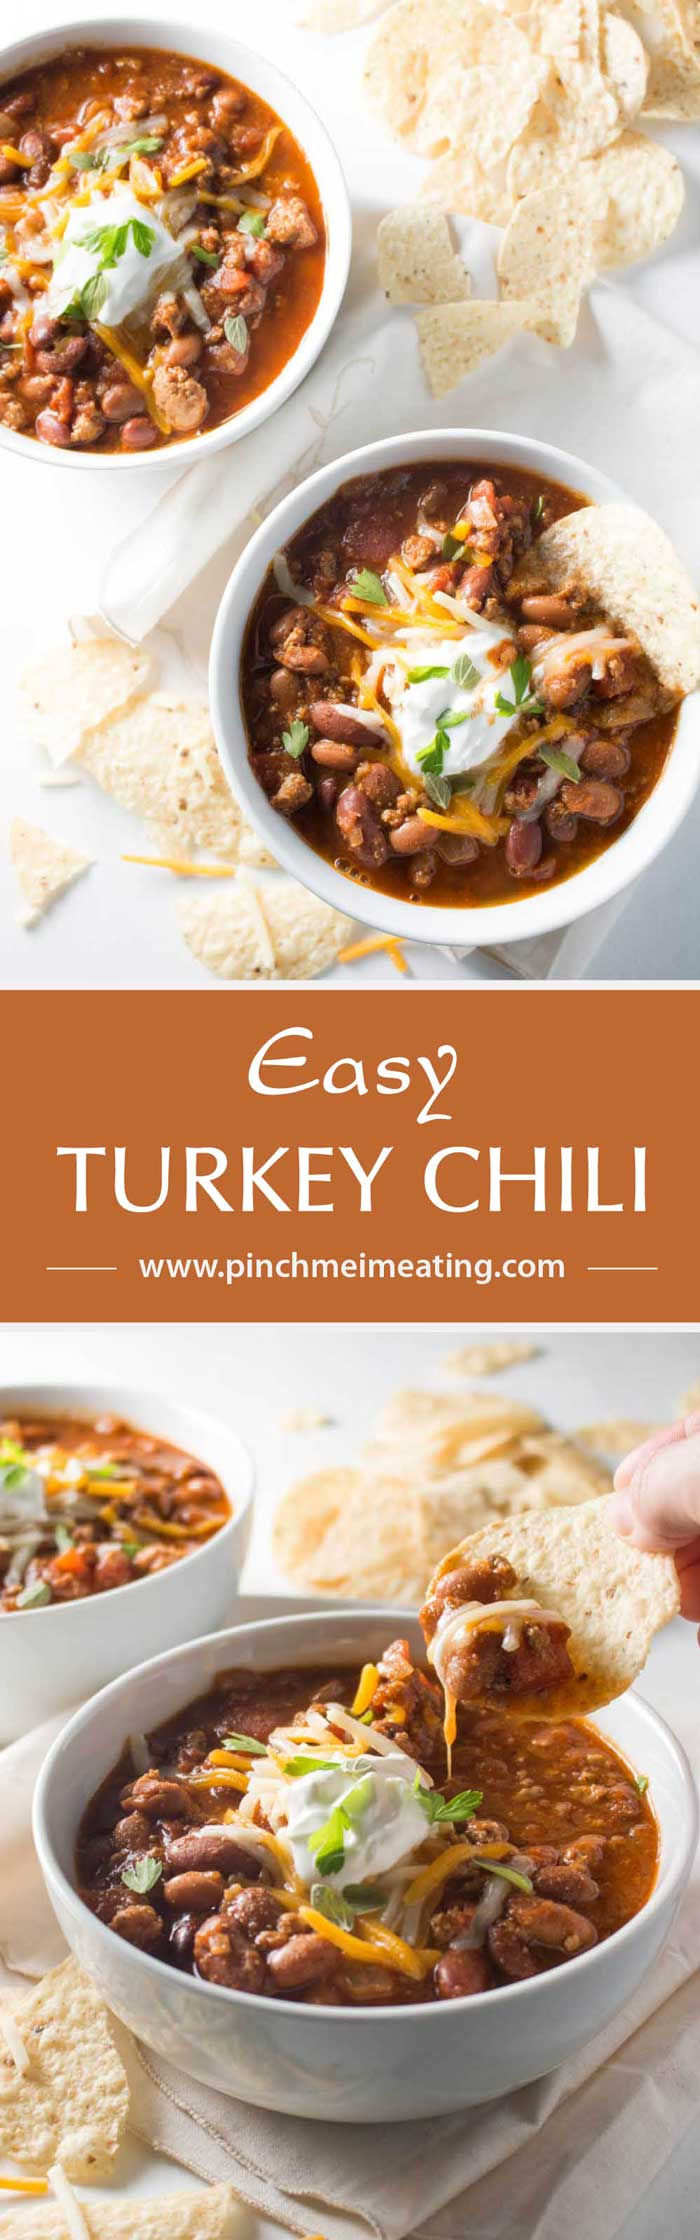 An easy turkey chili that's filling, cozy, and healthy. Perfect for dinner on a busy weeknight, and I only have to wash one pot! | www.pinchmeimeating.com